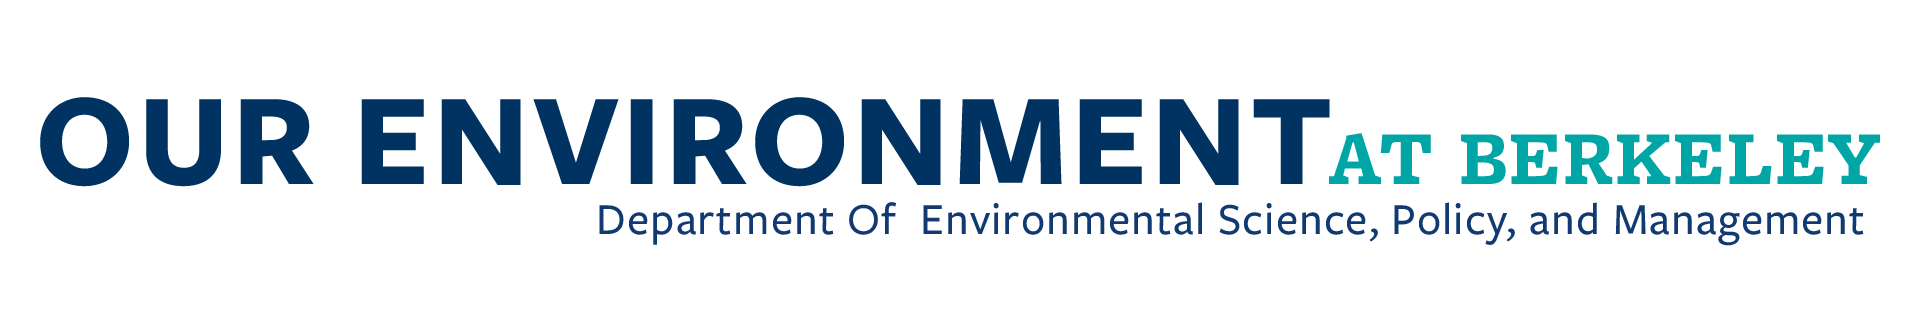 Department of Environmental Science, Policy, and Management